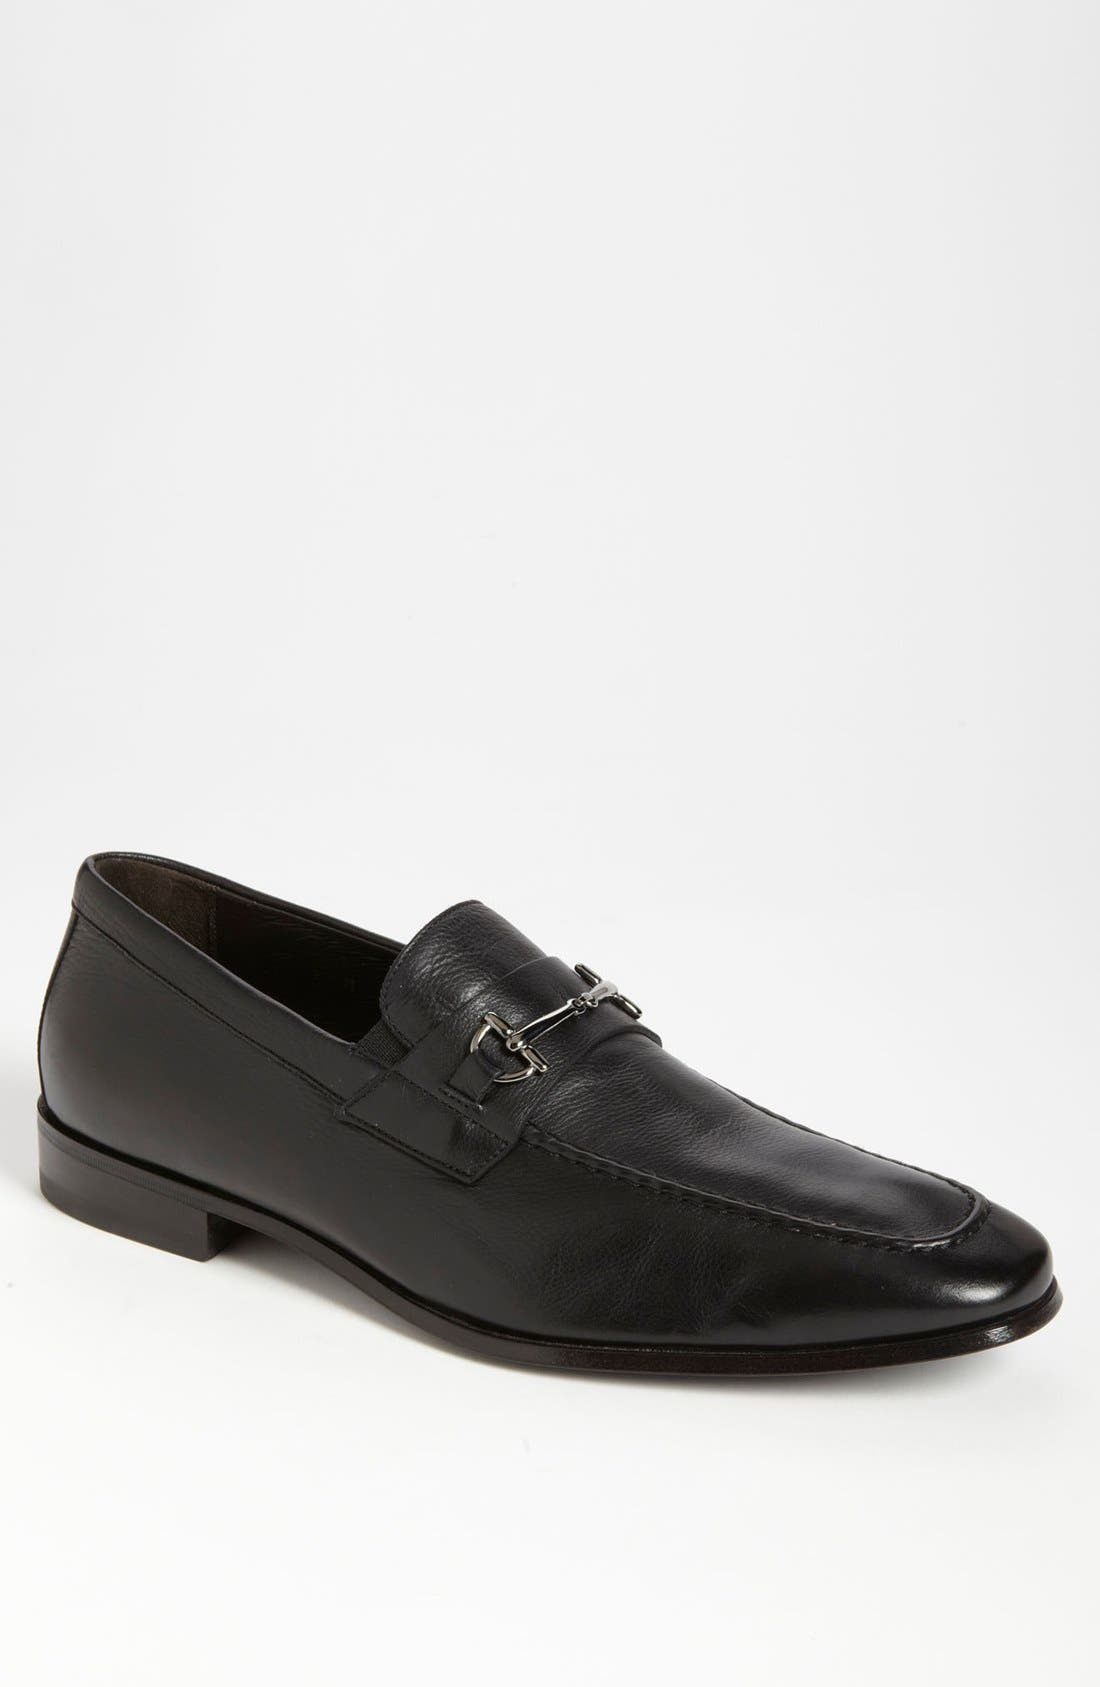 Main Image - Bruno Magli 'Mamante' Bit Loafer (Online Only)